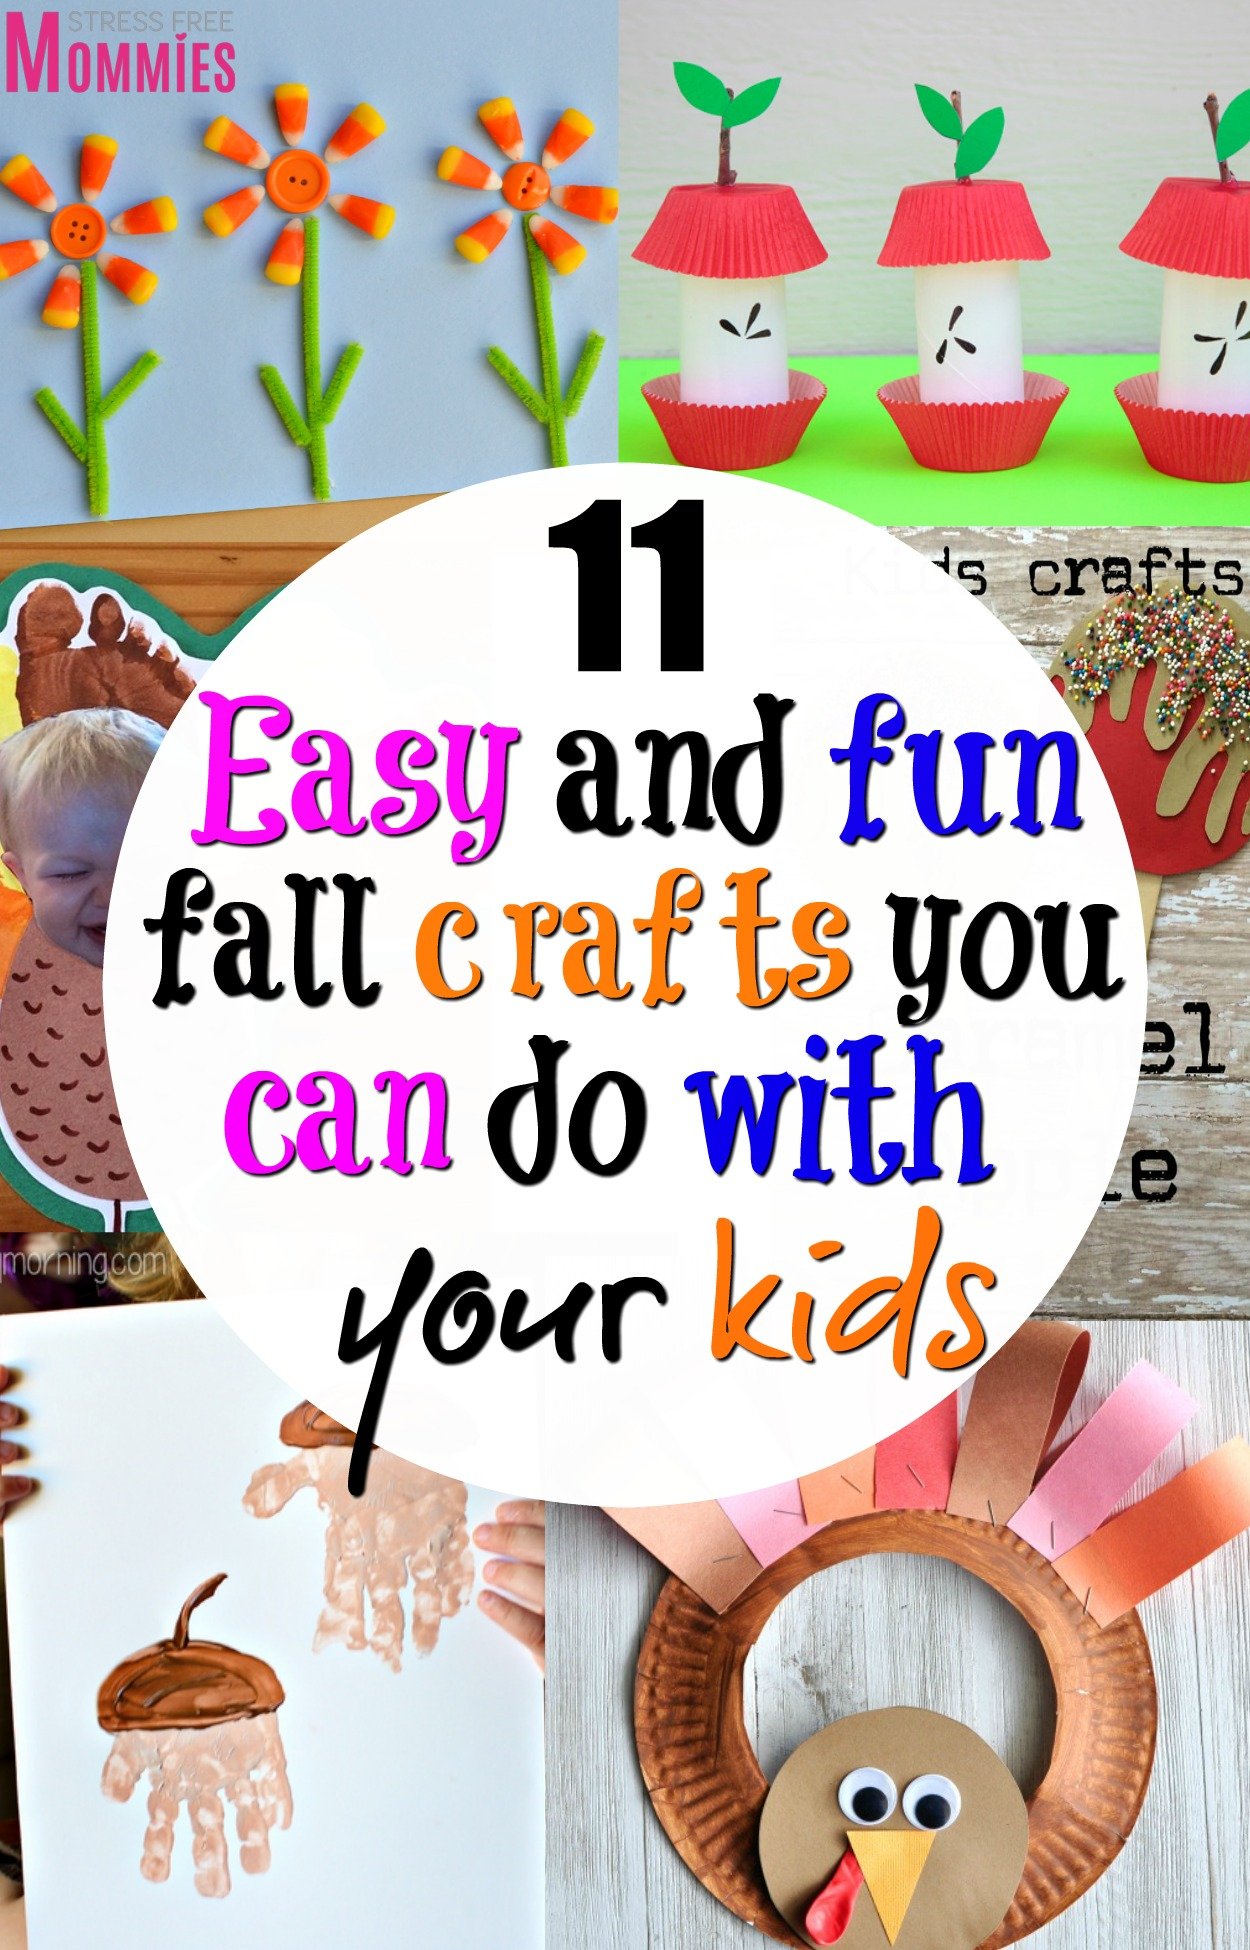 11 easy and fun fall crafts you can do with your kids- Get excited with these super cute fall crafts that are easy enough to make with your kids! #fallcrafts #kidfriendly #crafts